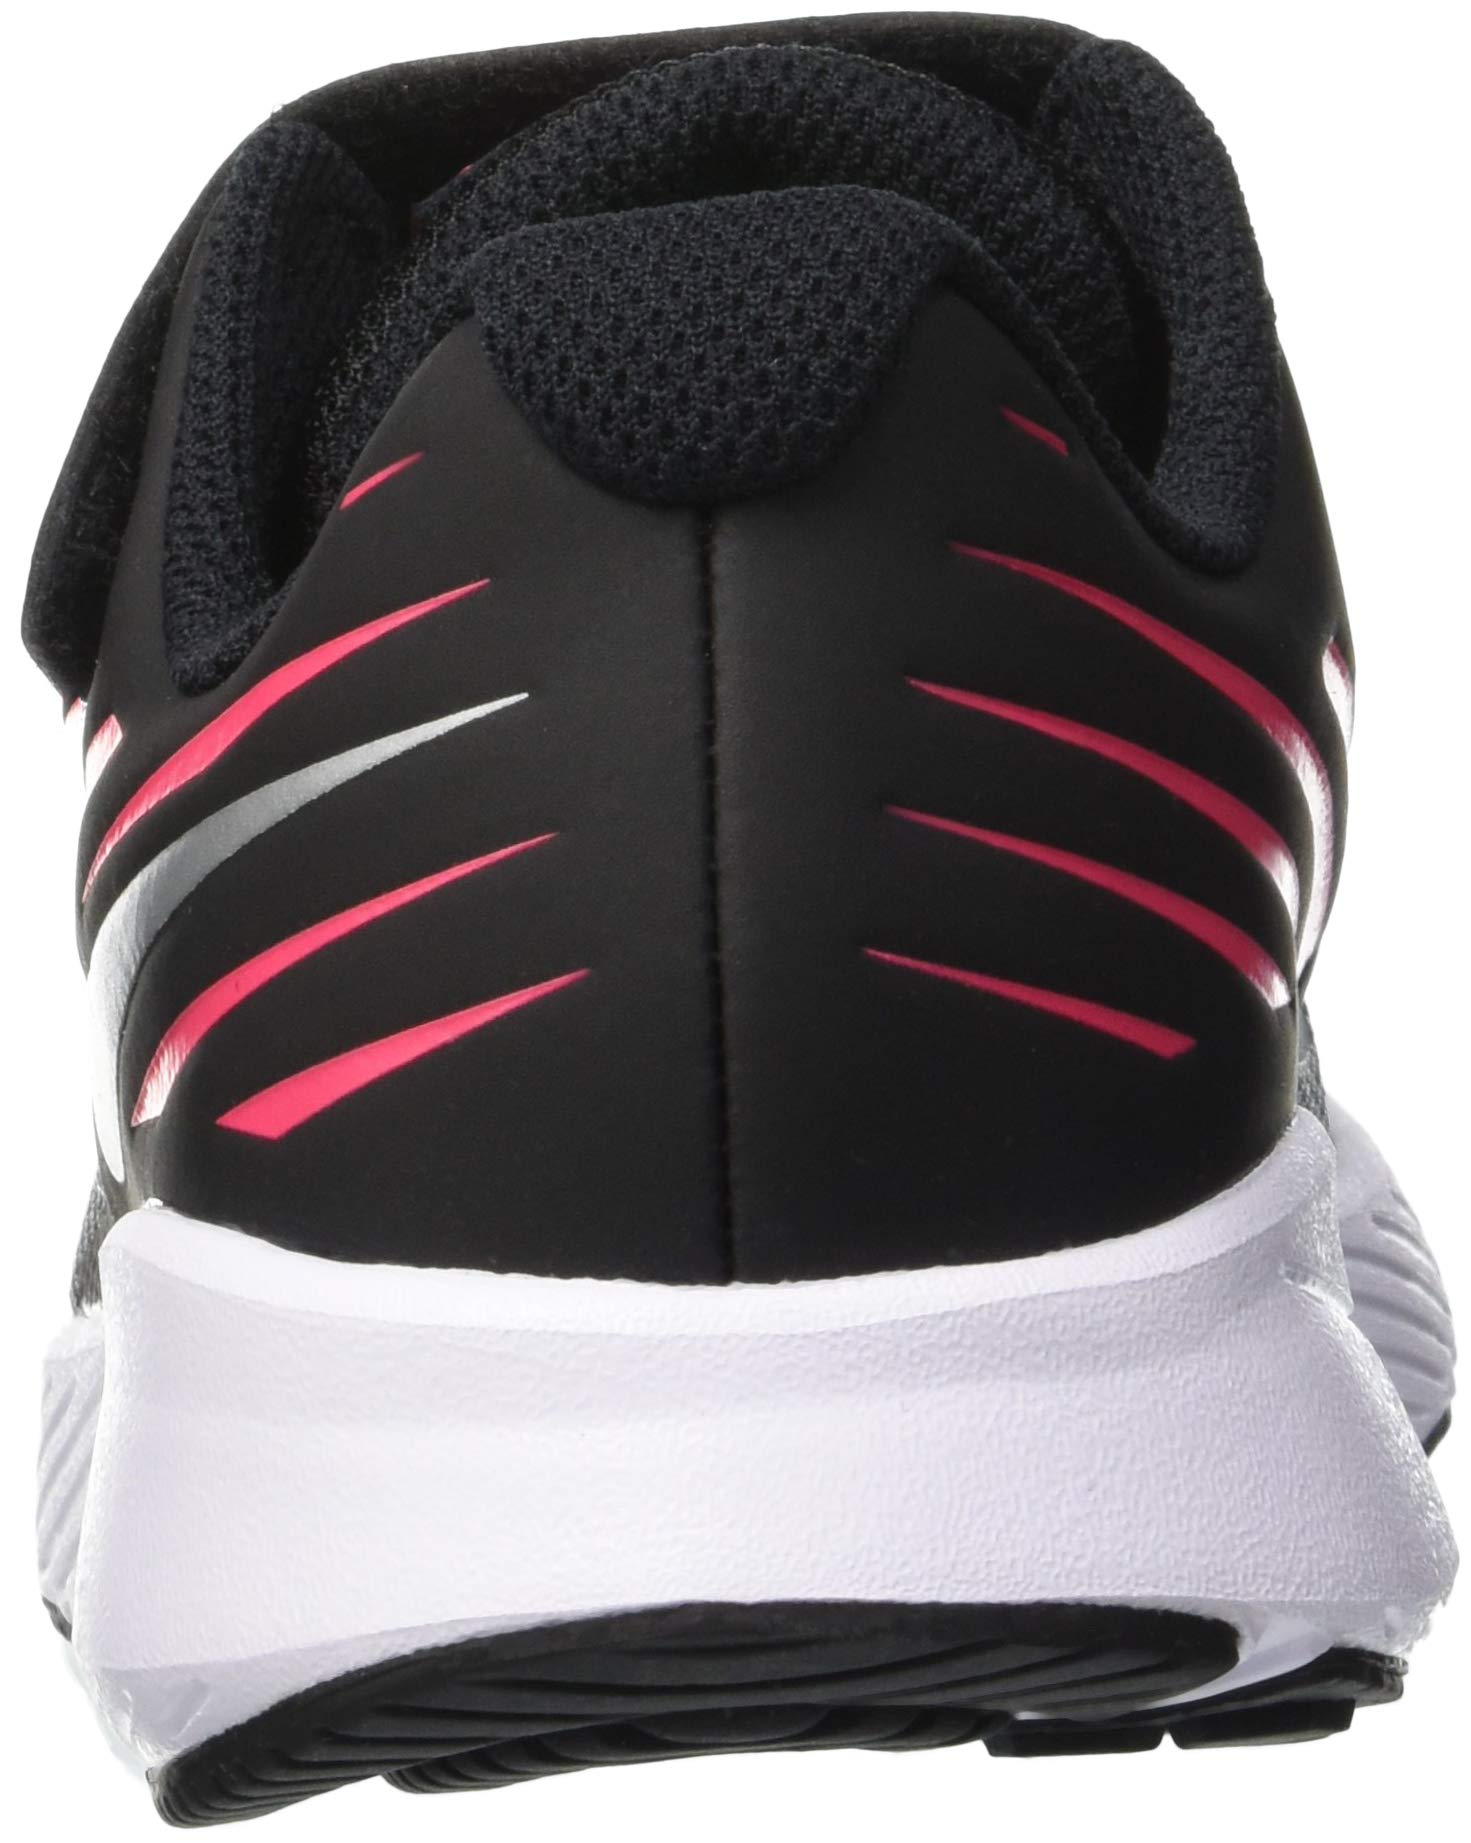 Nike Girl's Star Runner (PSV) Pre-School Shoe Black/Metallic Silver/Racer Pink/Volt Size 1.5 M US by Nike (Image #2)